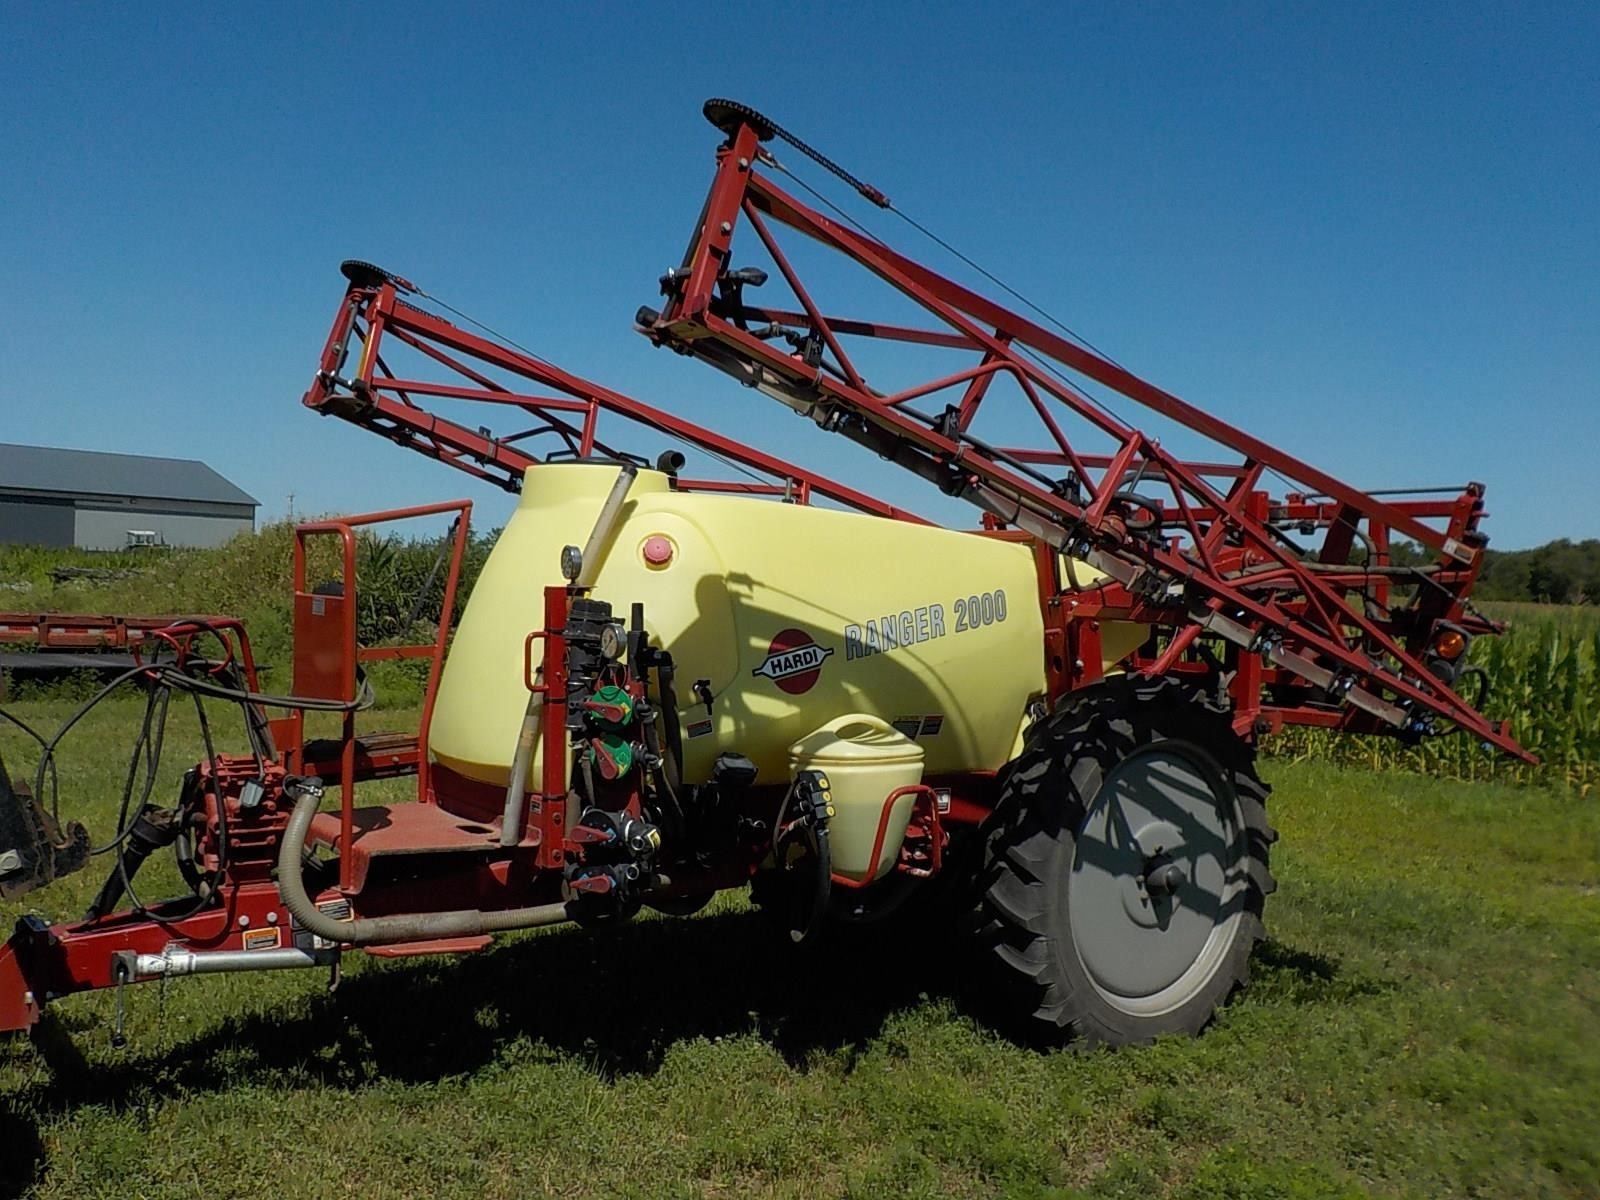 2012 Hardi Ranger 2000 Pull-Type Sprayer